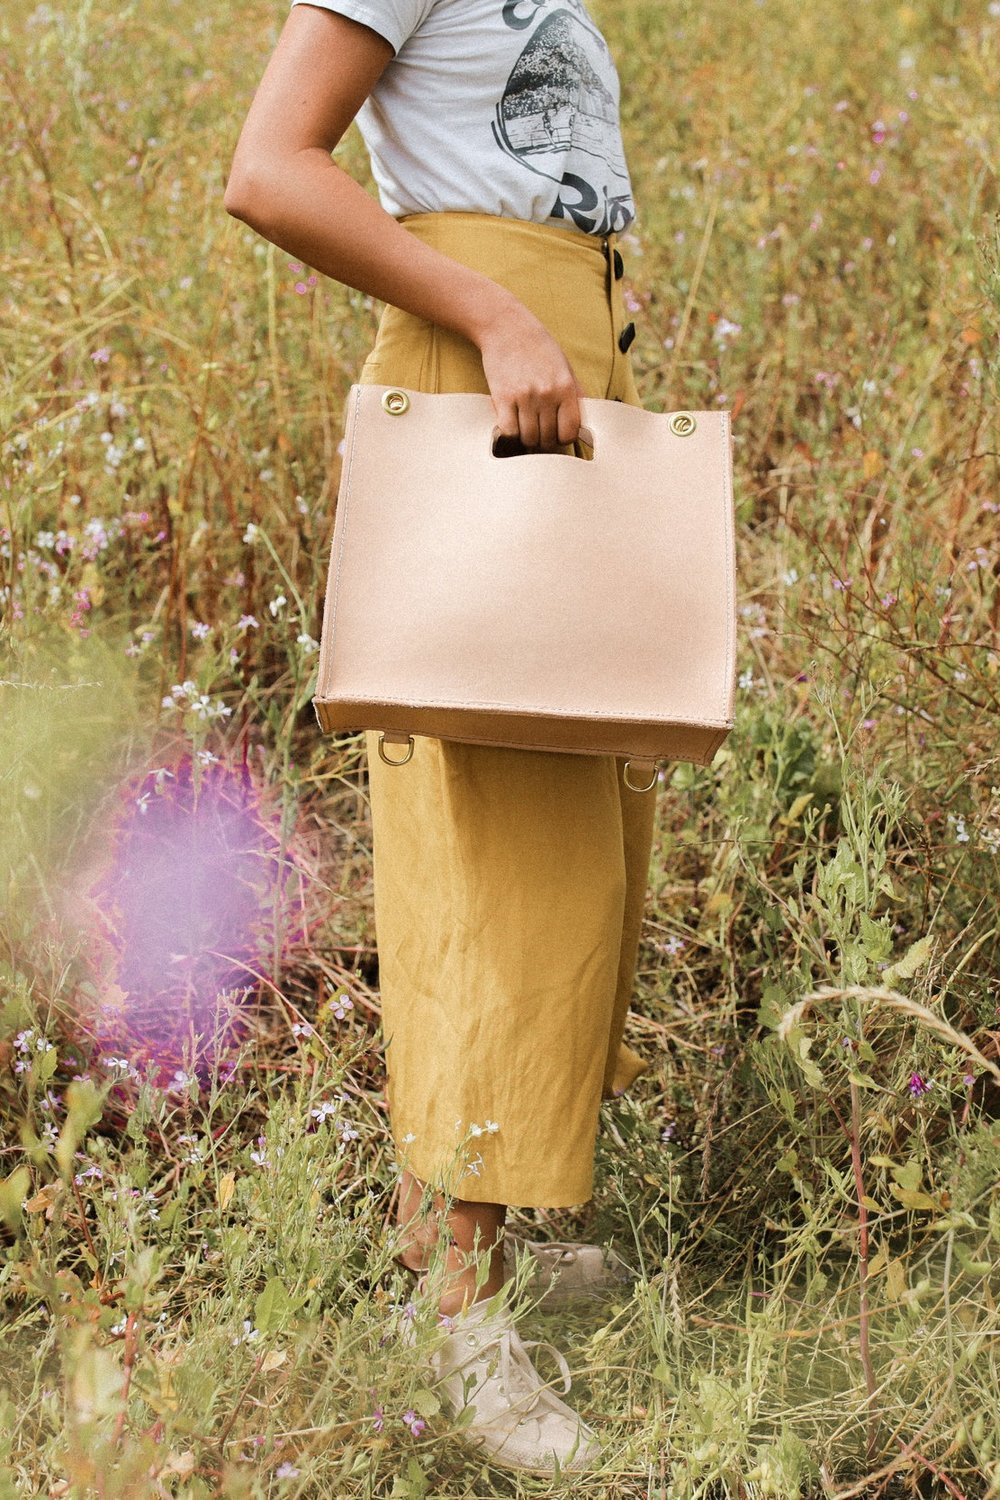 Model holds a new veg-tan Petite Tote. The leather starts off a very light blush or cream color.